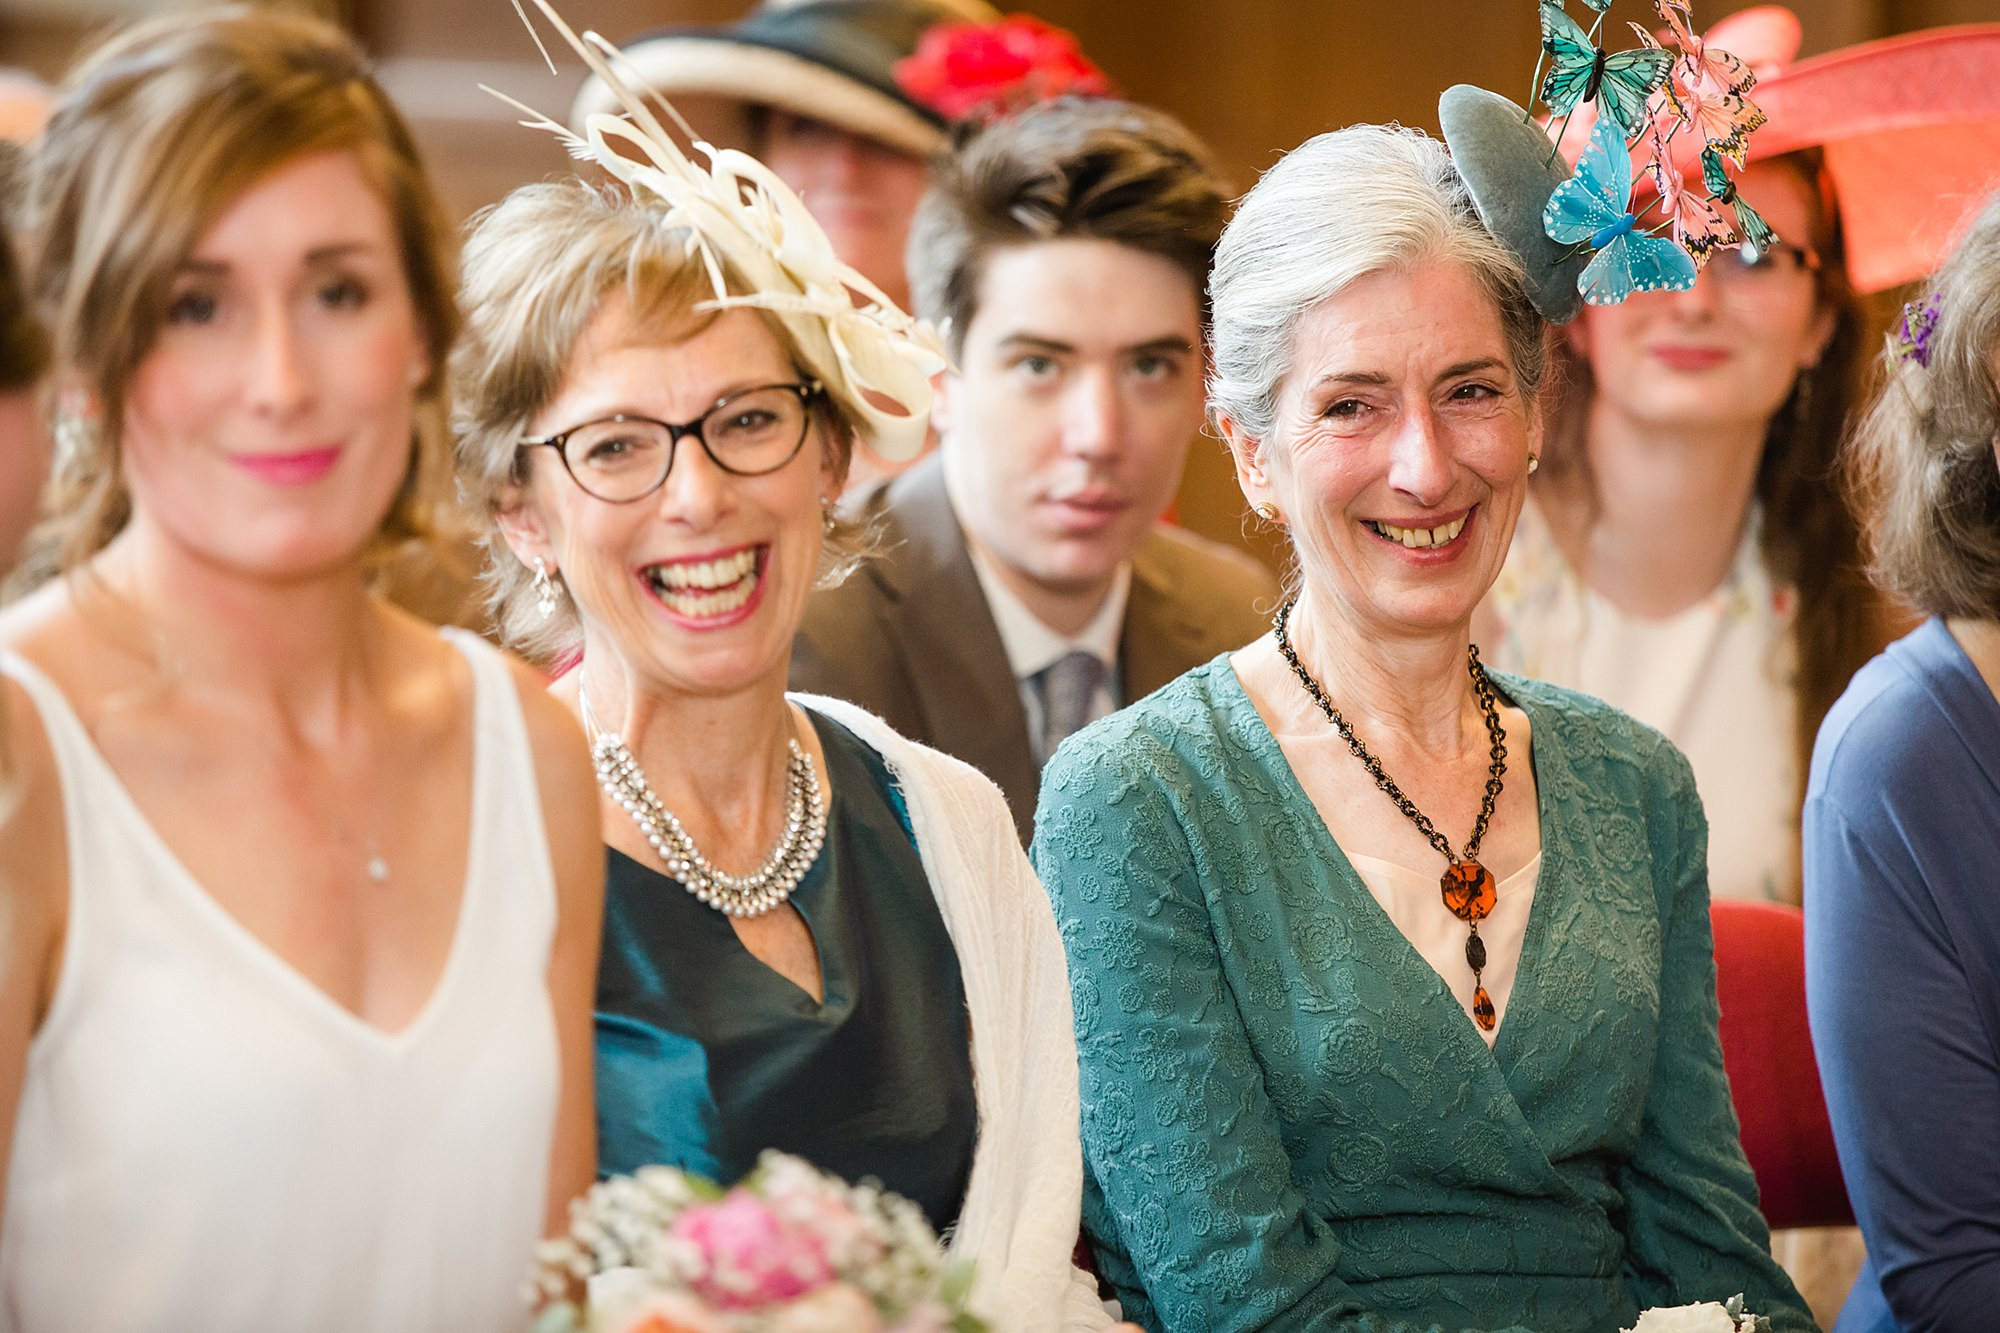 Isis Farmhouse Oxford Wedding guests laugh during wedding ceremony